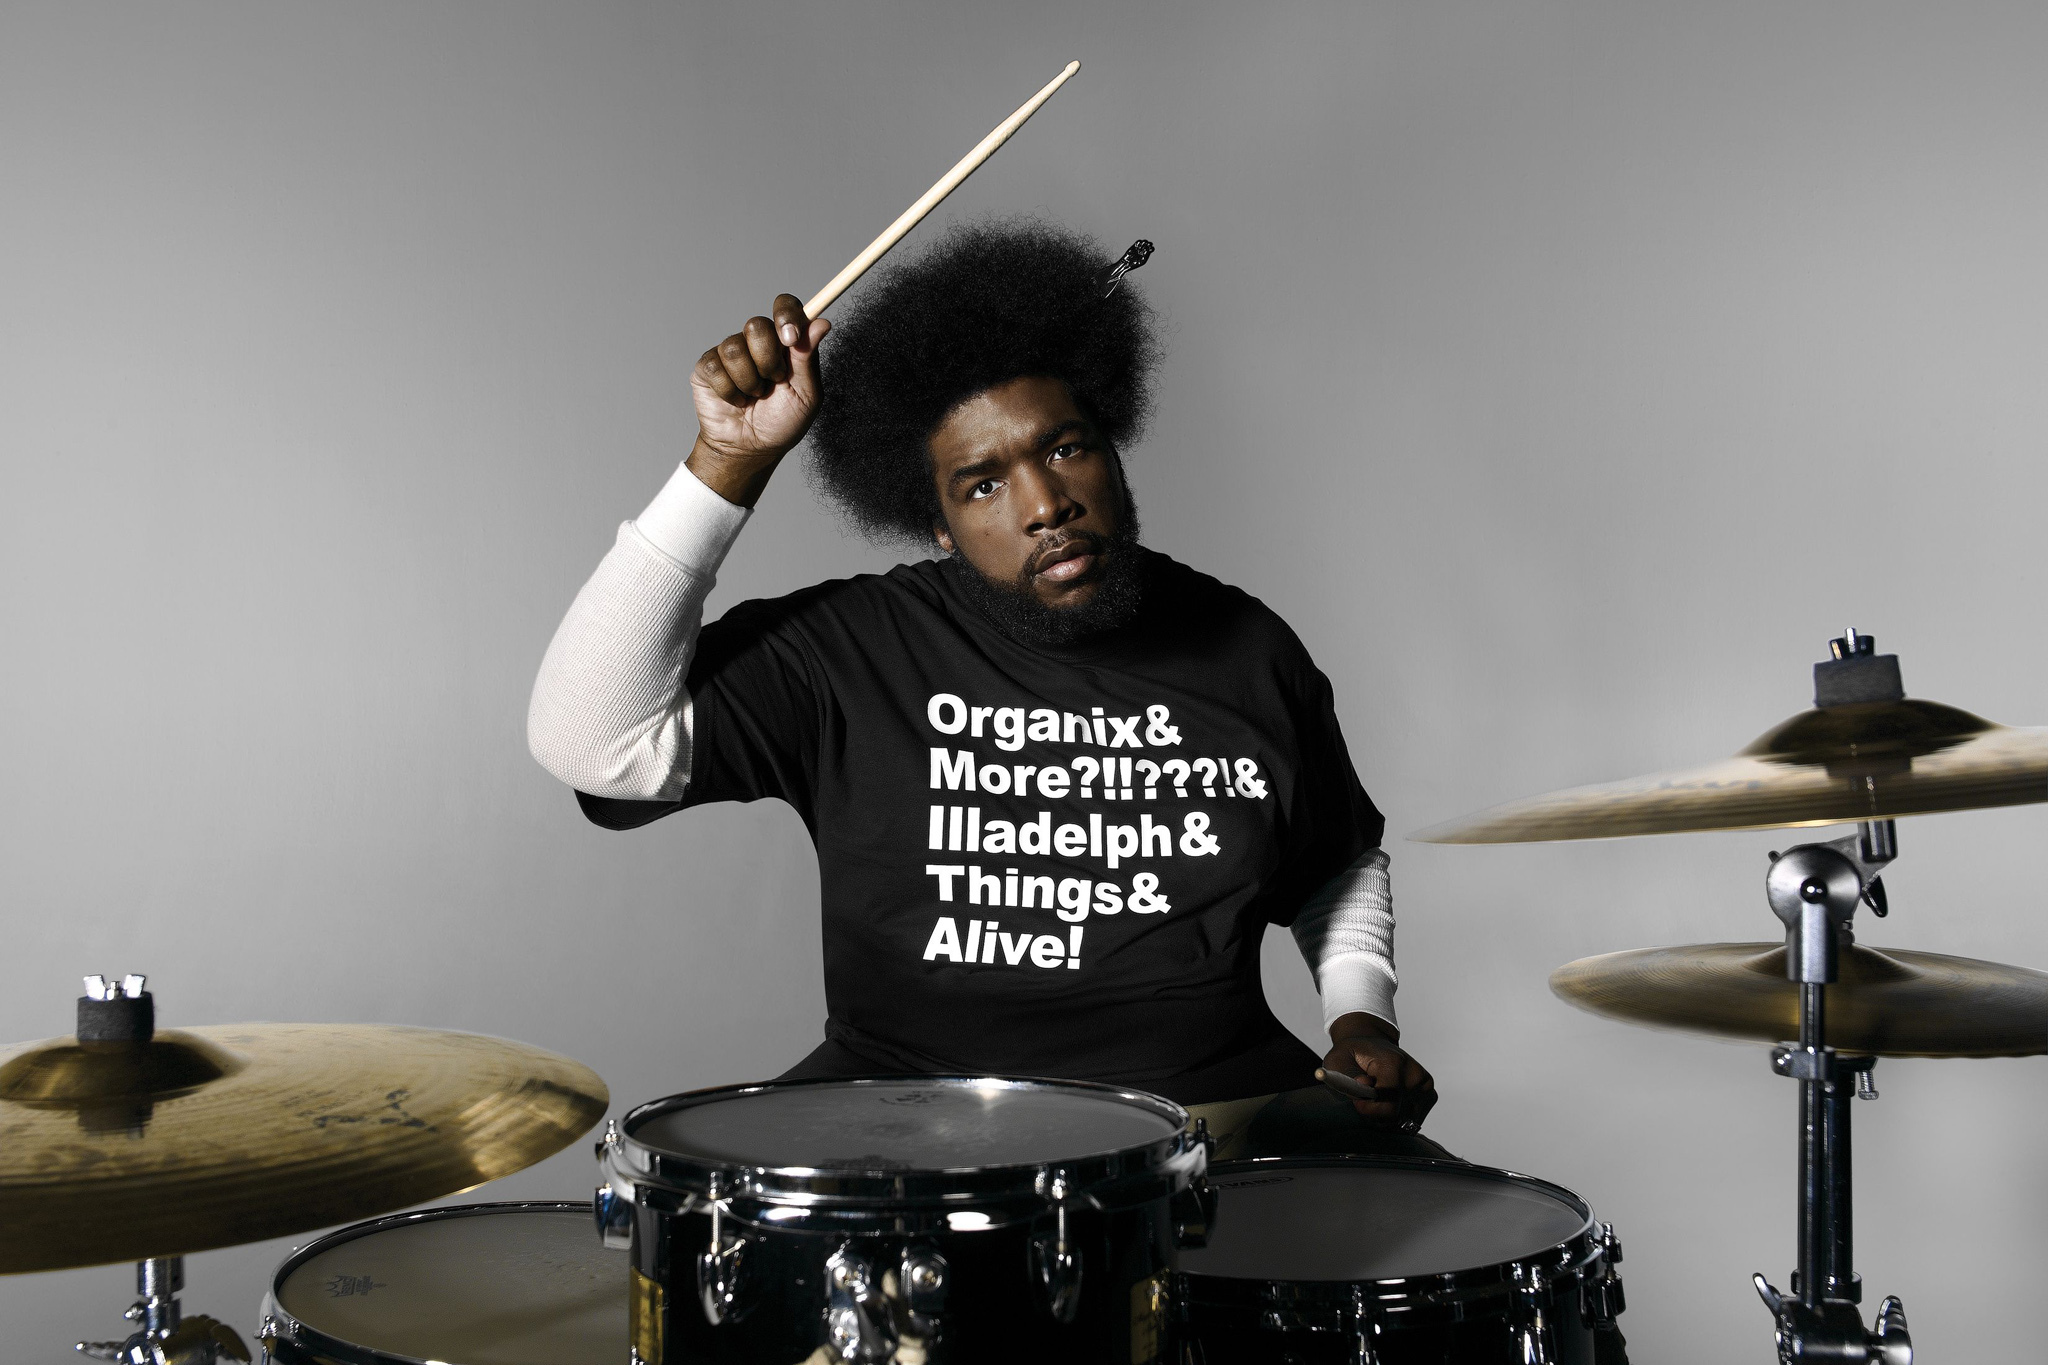 Questlove drums